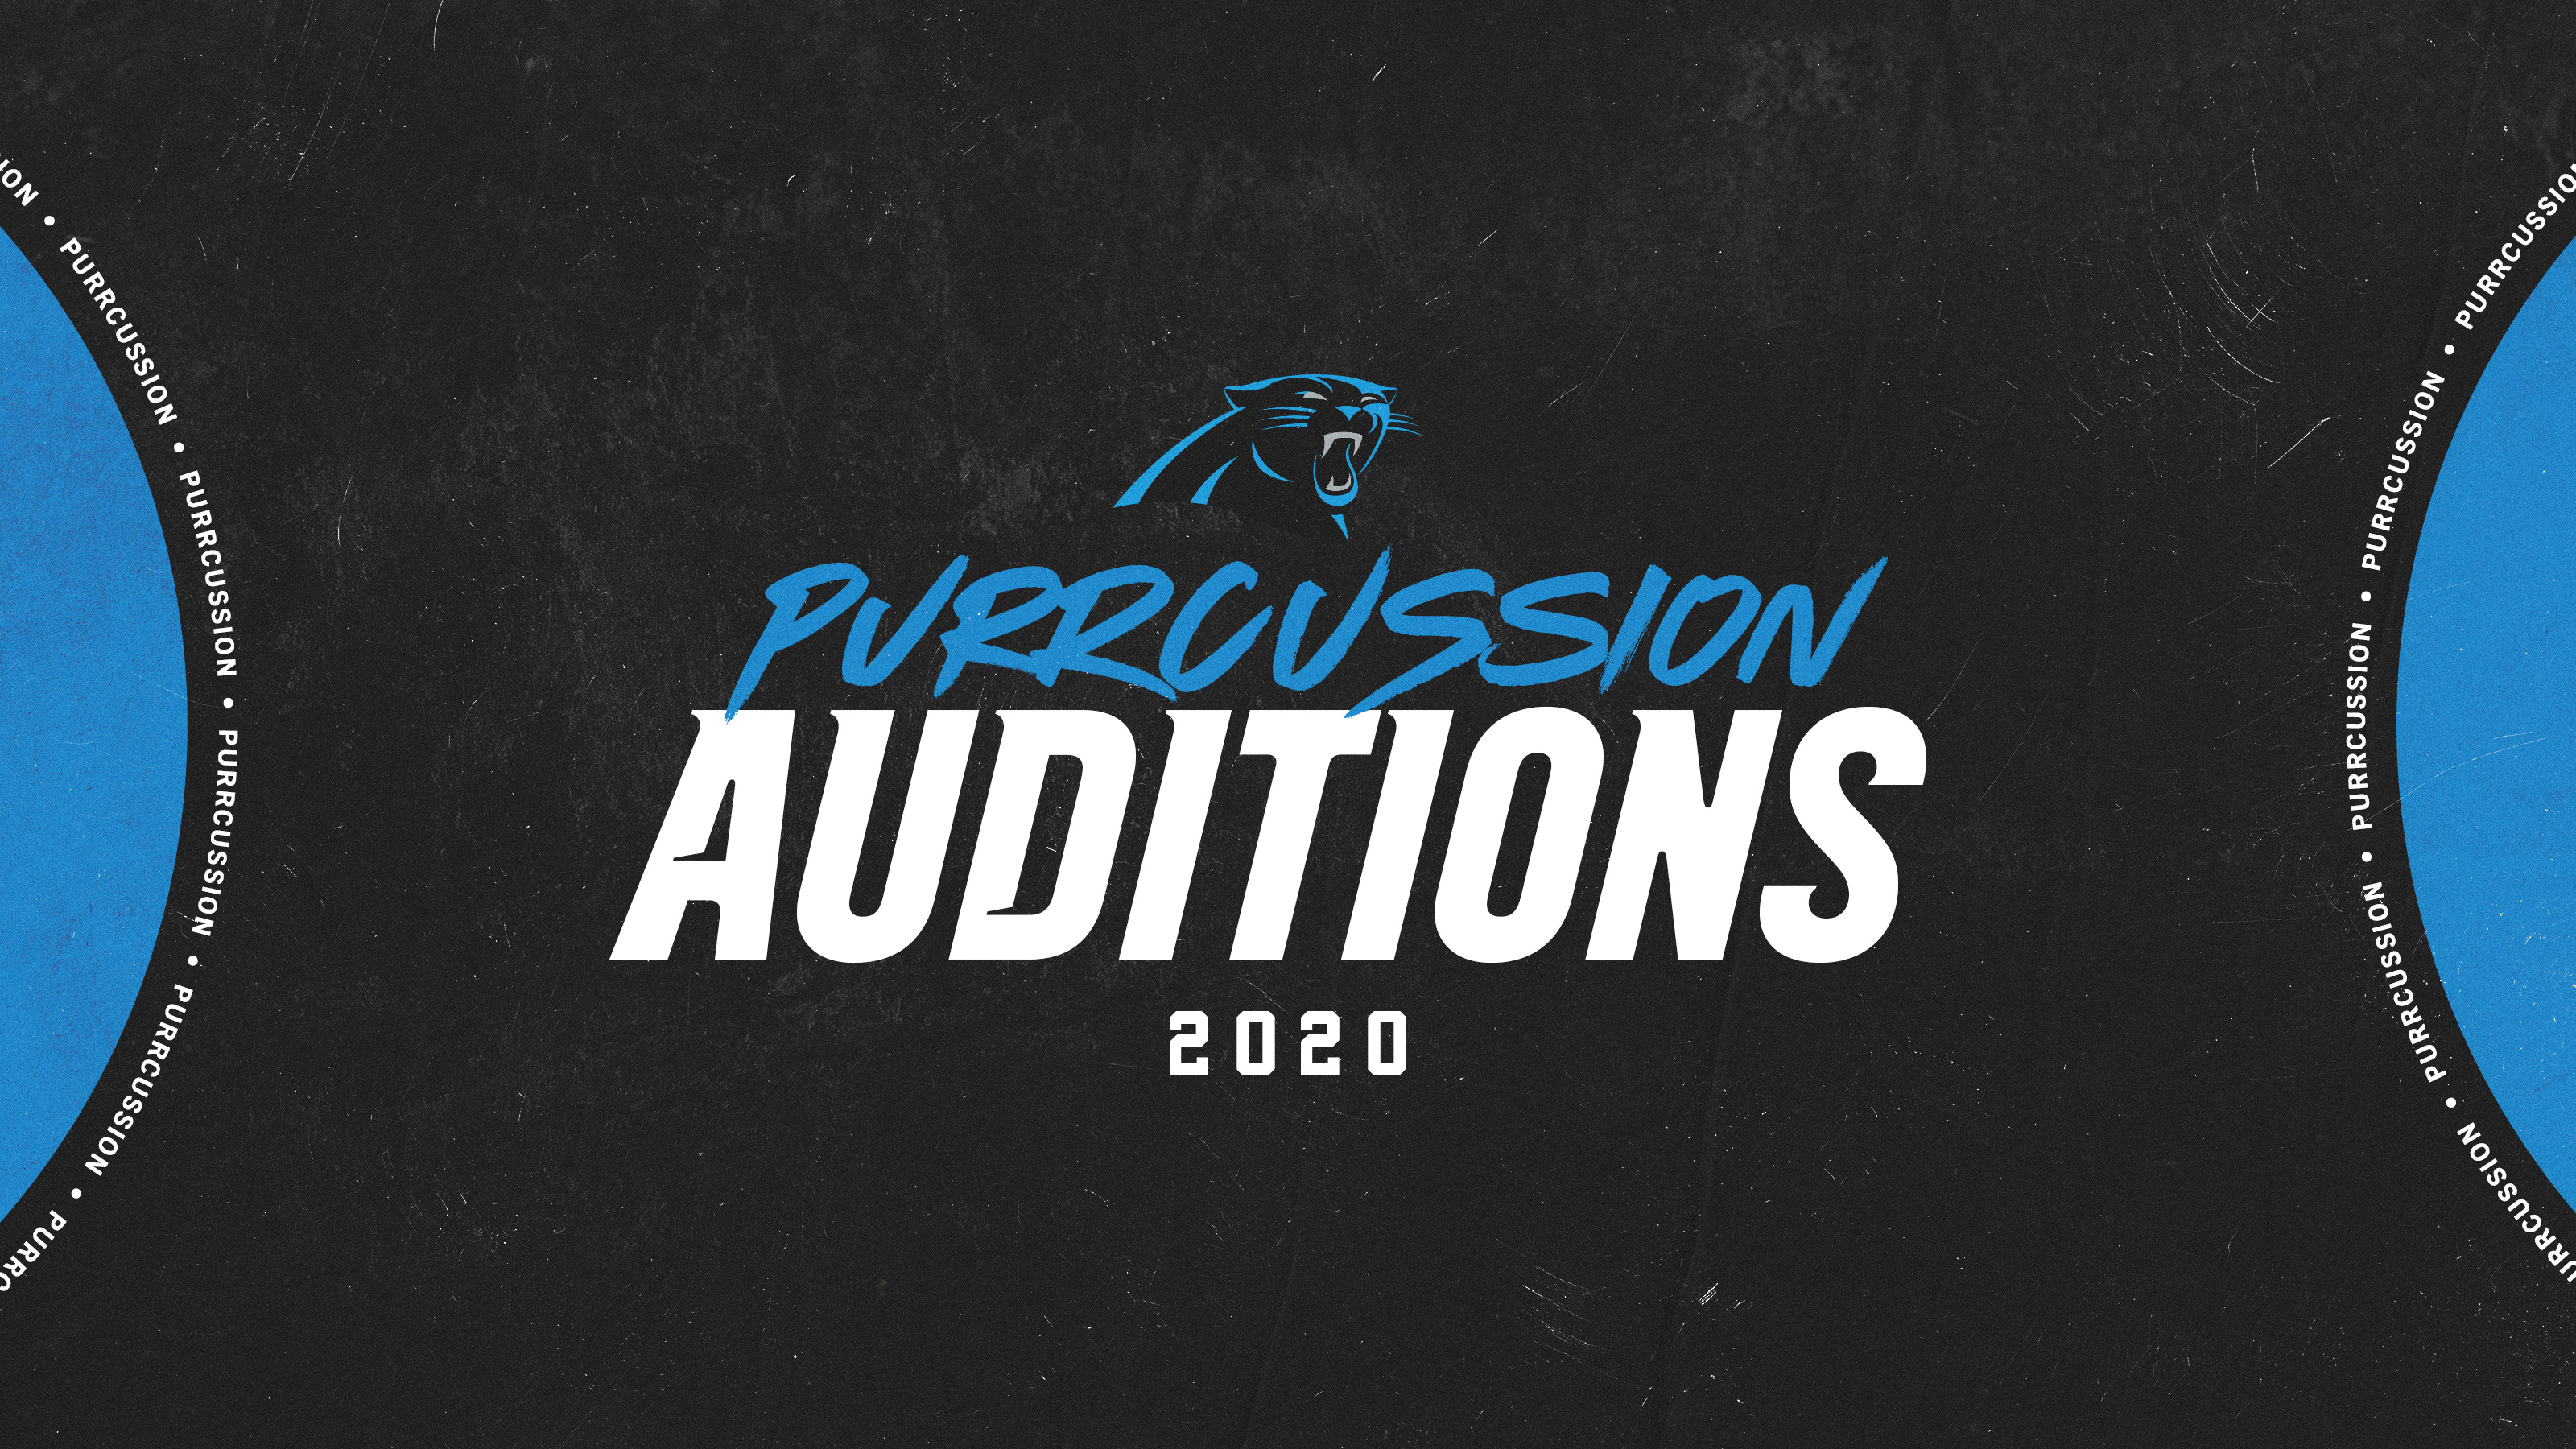 2020 Purrcussion Auditions